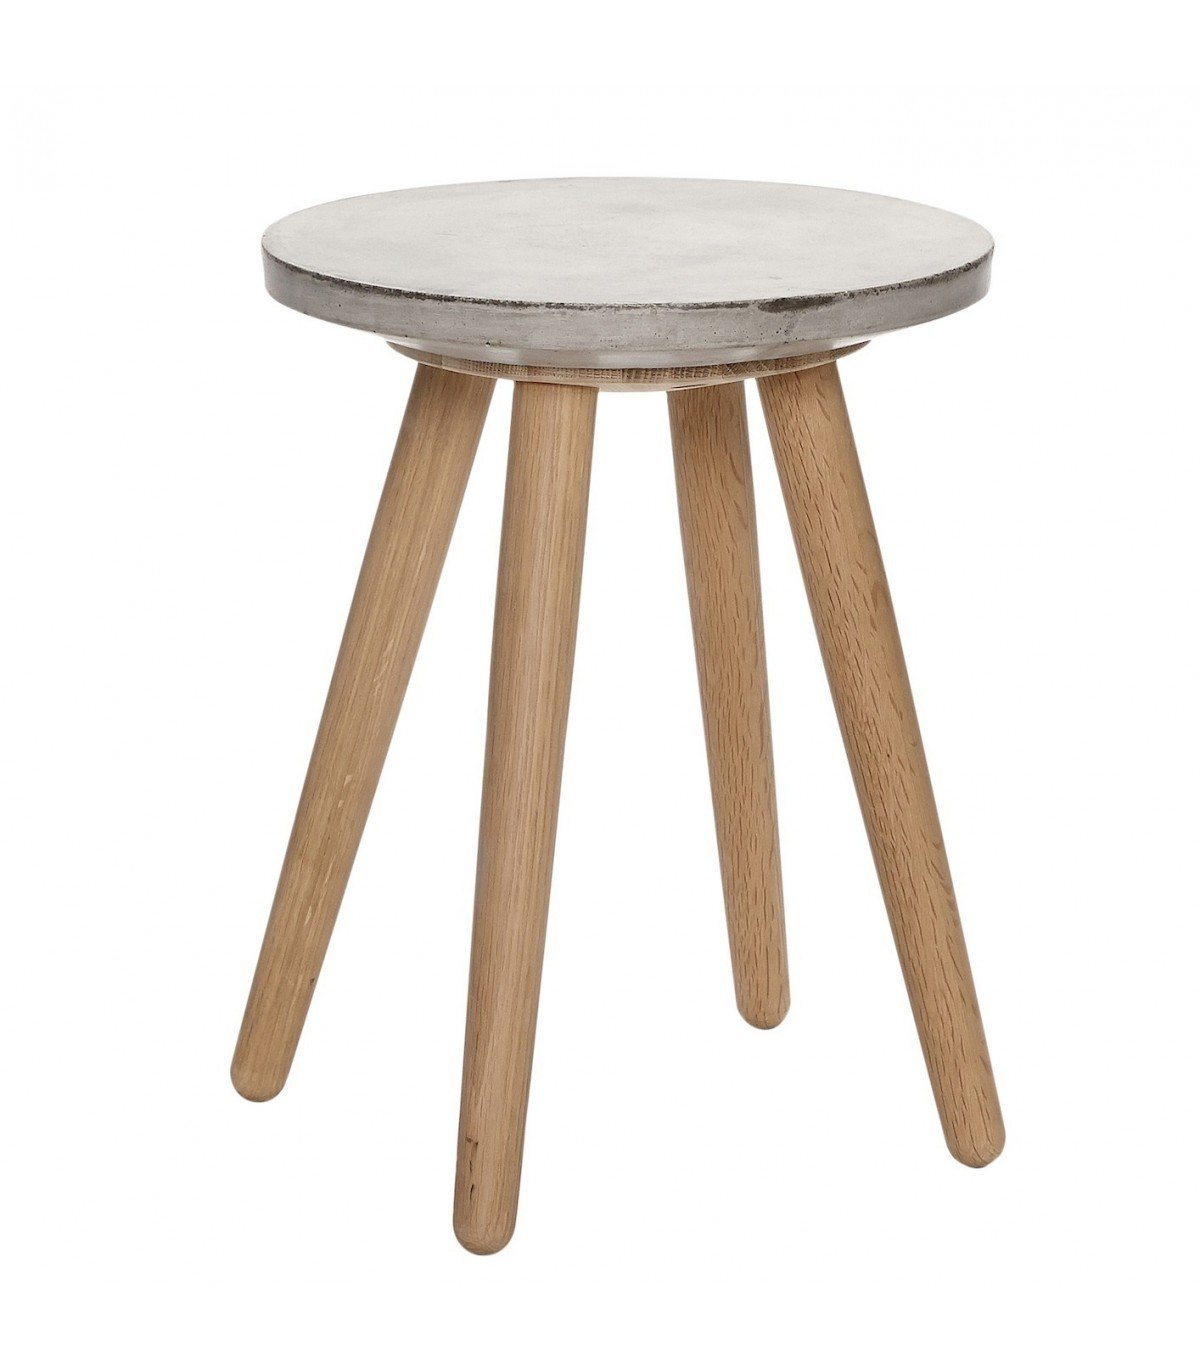 Table basse ch ne et b ton petite h bsch for Petite table basse ronde